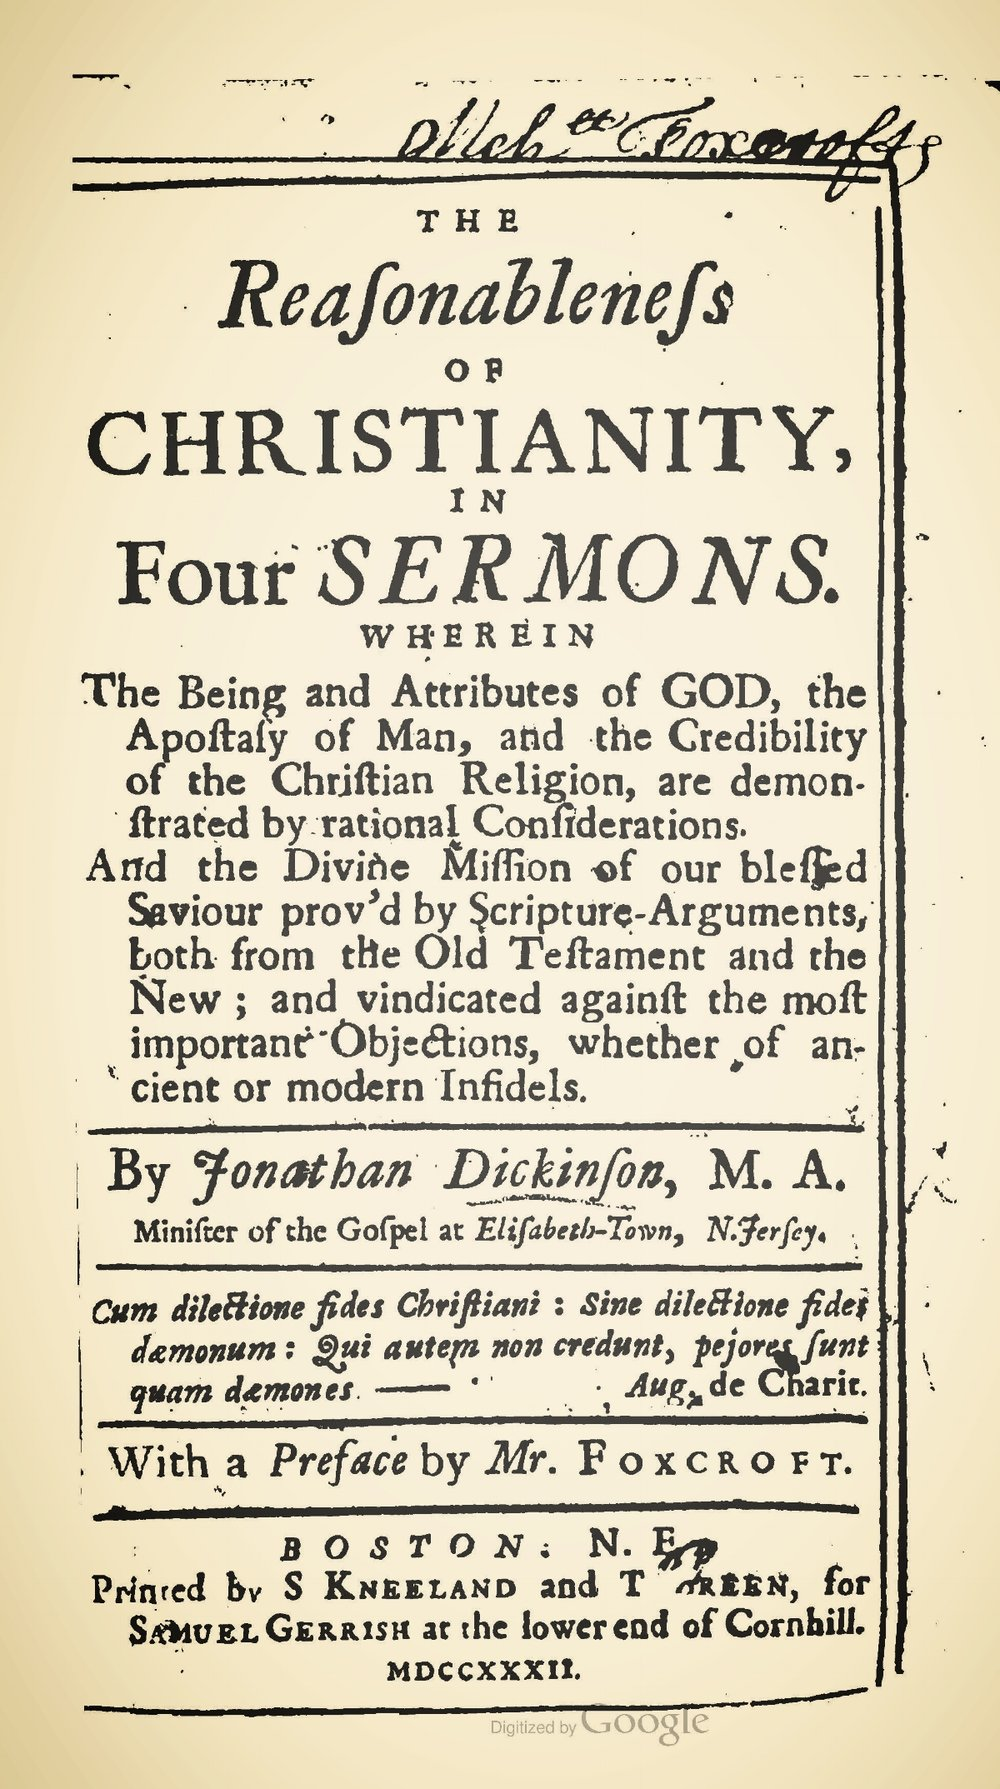 Dickinson, Jonathan, The Reasonableness of Christianity Title Page.jpg